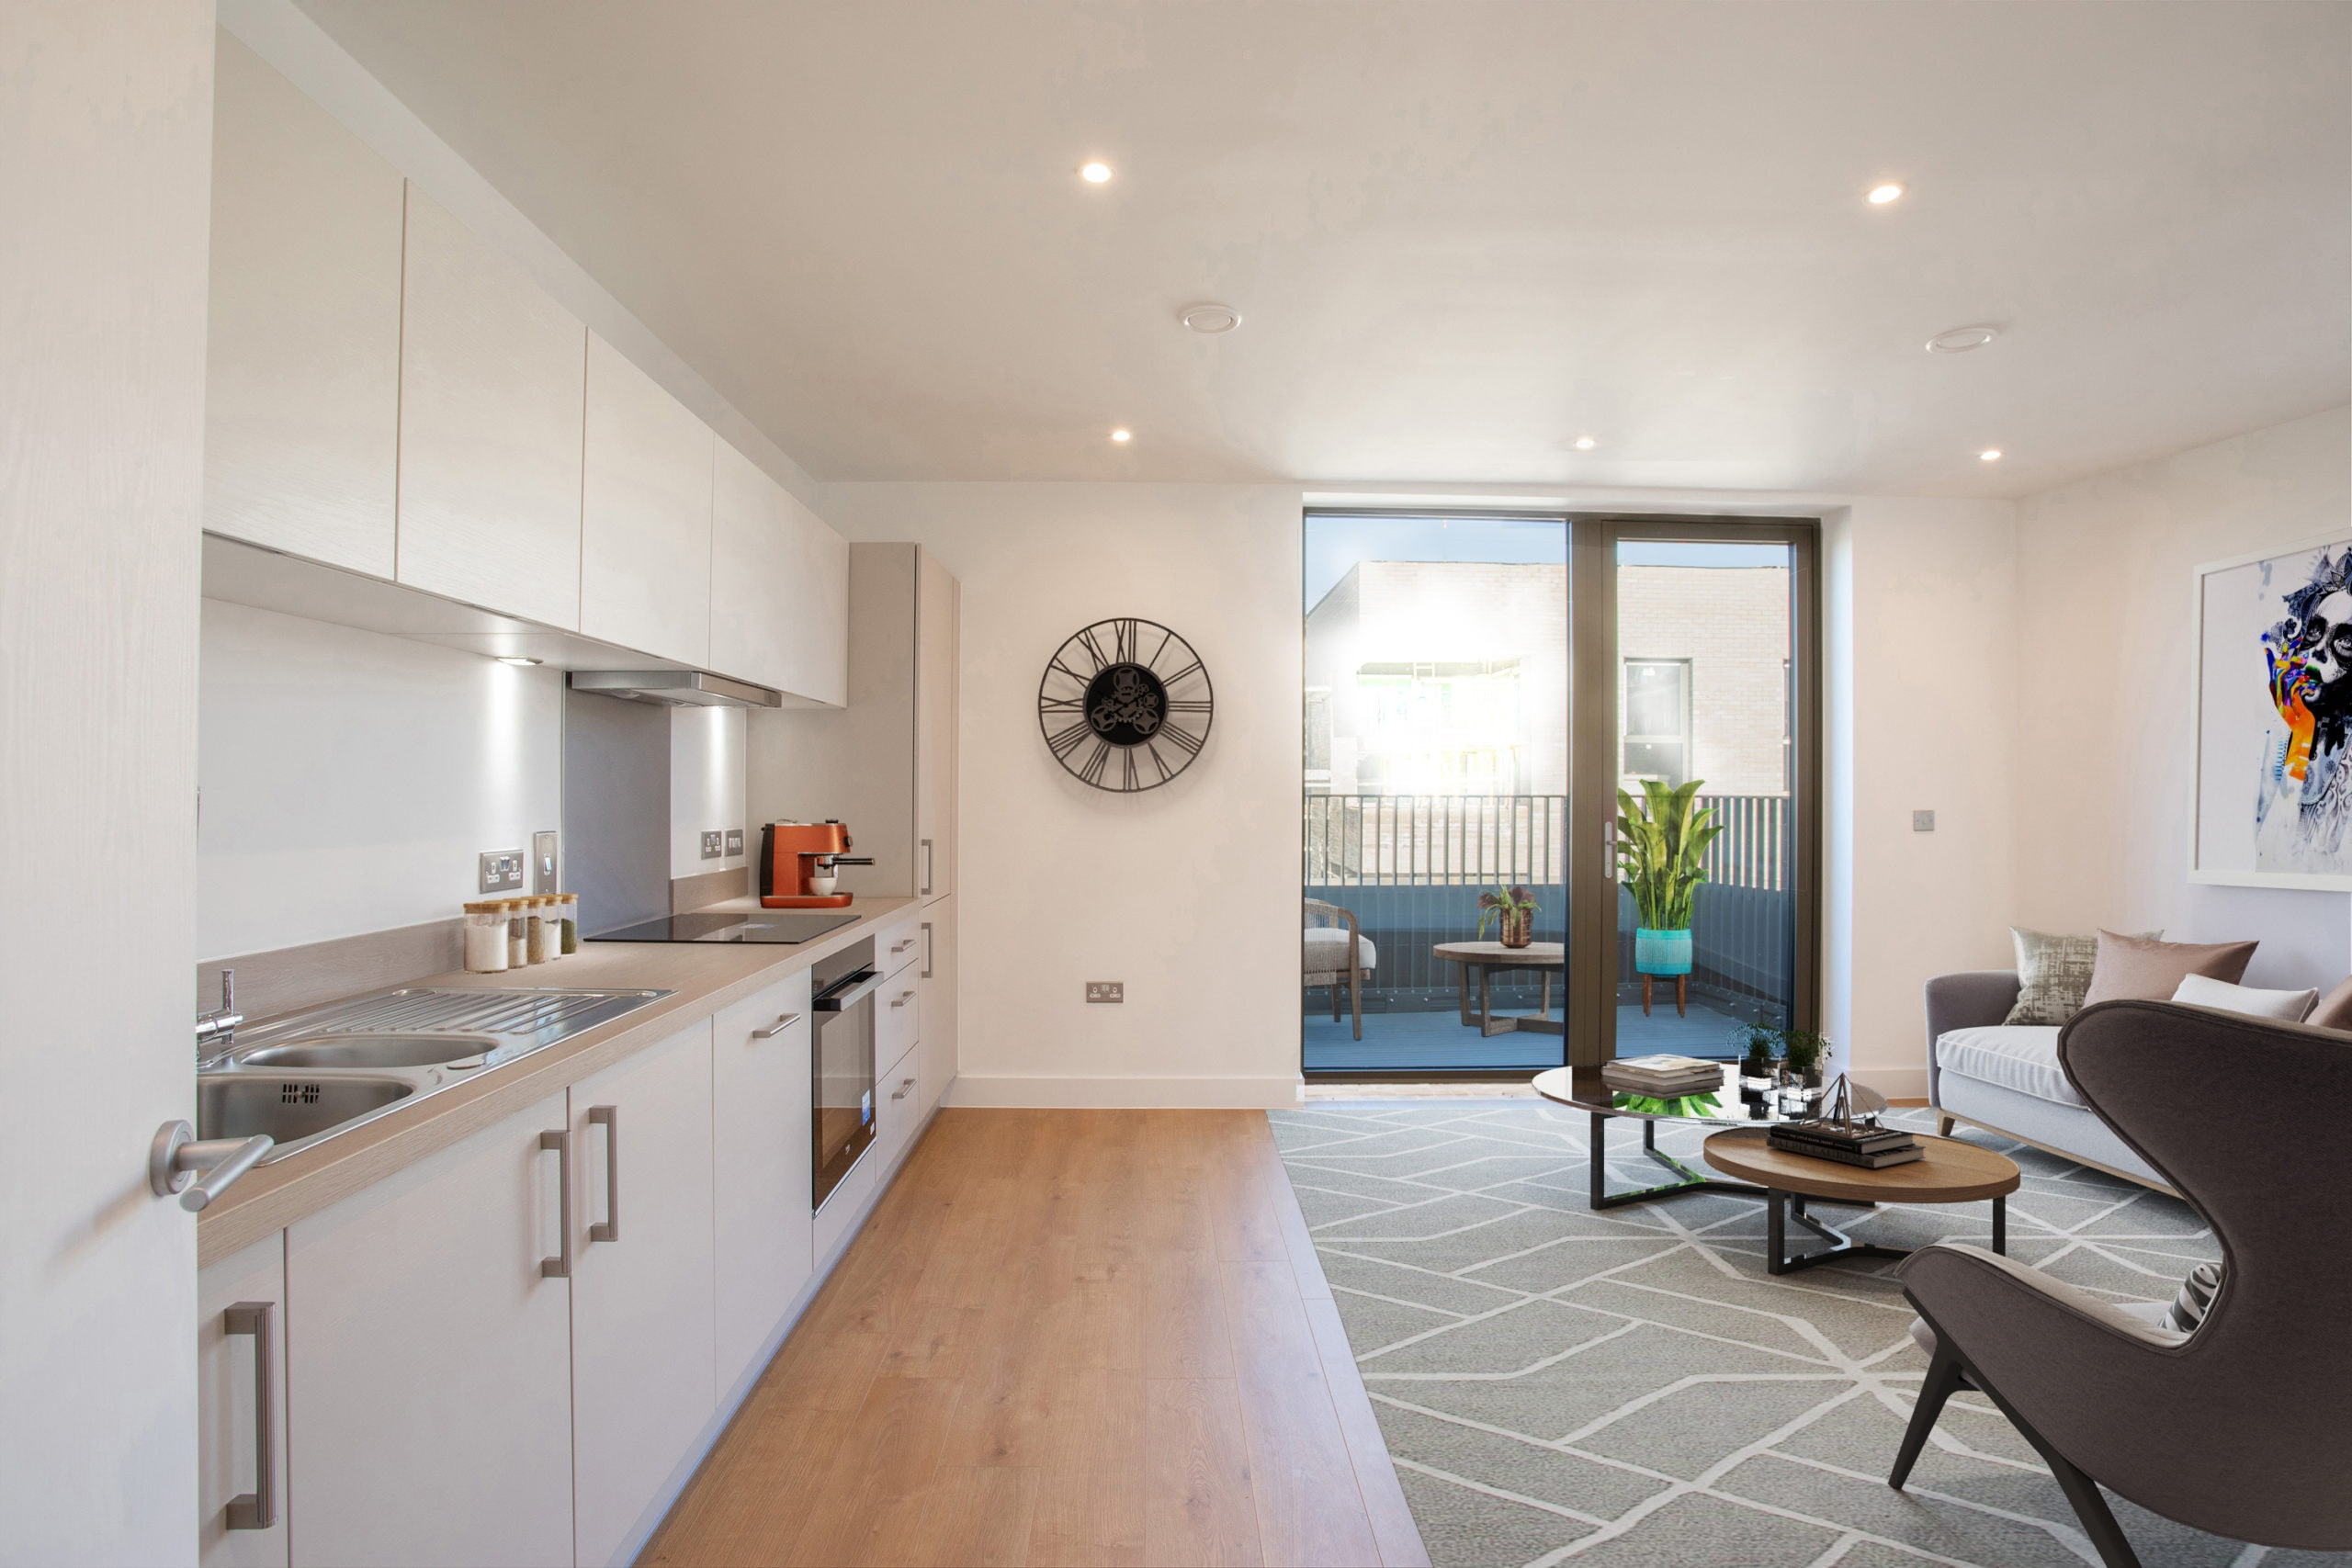 Internal photography of L&Q's Lock No 19 - Shared Ownership homes available on Share to Buy